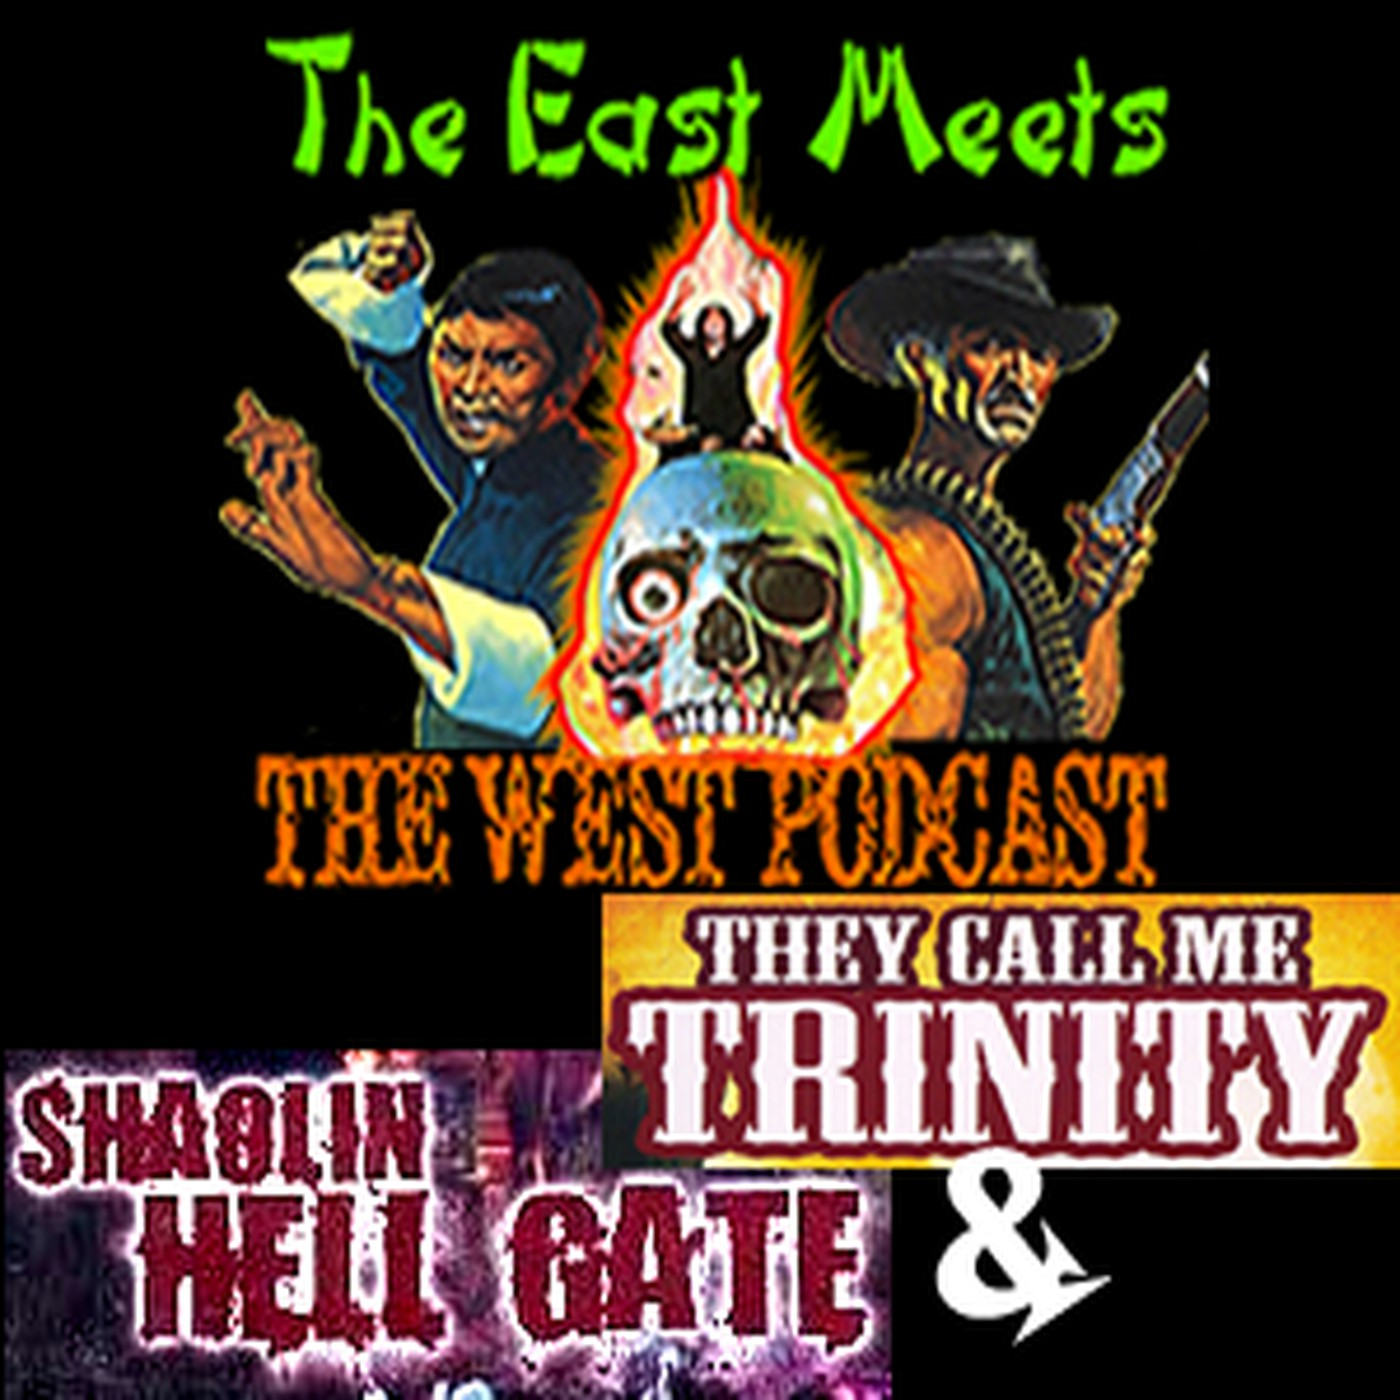 The East Meets The West